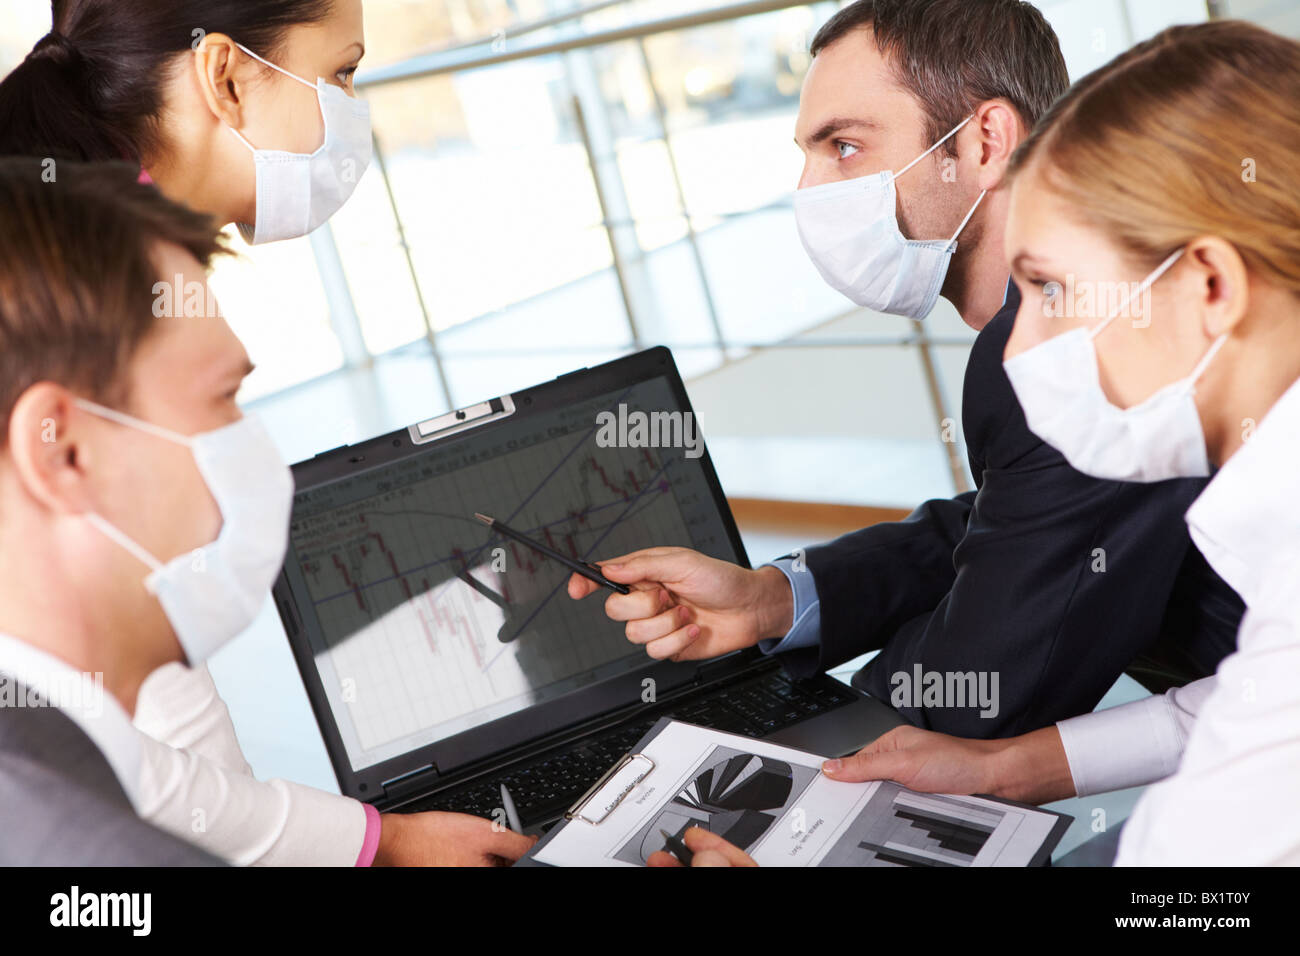 serious-business-partners-in-protective-mask-looking-at-screen-of-BX1T0Y.jpg